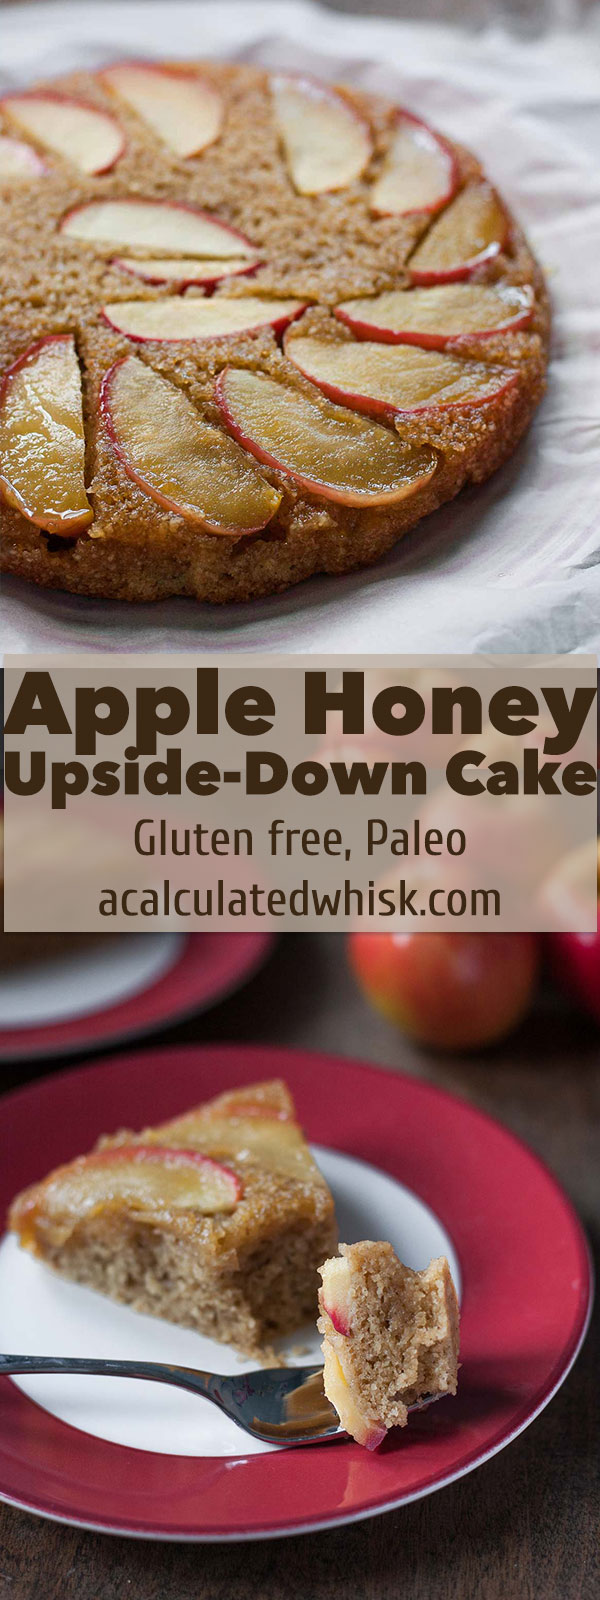 Apple Honey Upside-Down Cake (Dairy free, Paleo) | acalculatedwhisk.com